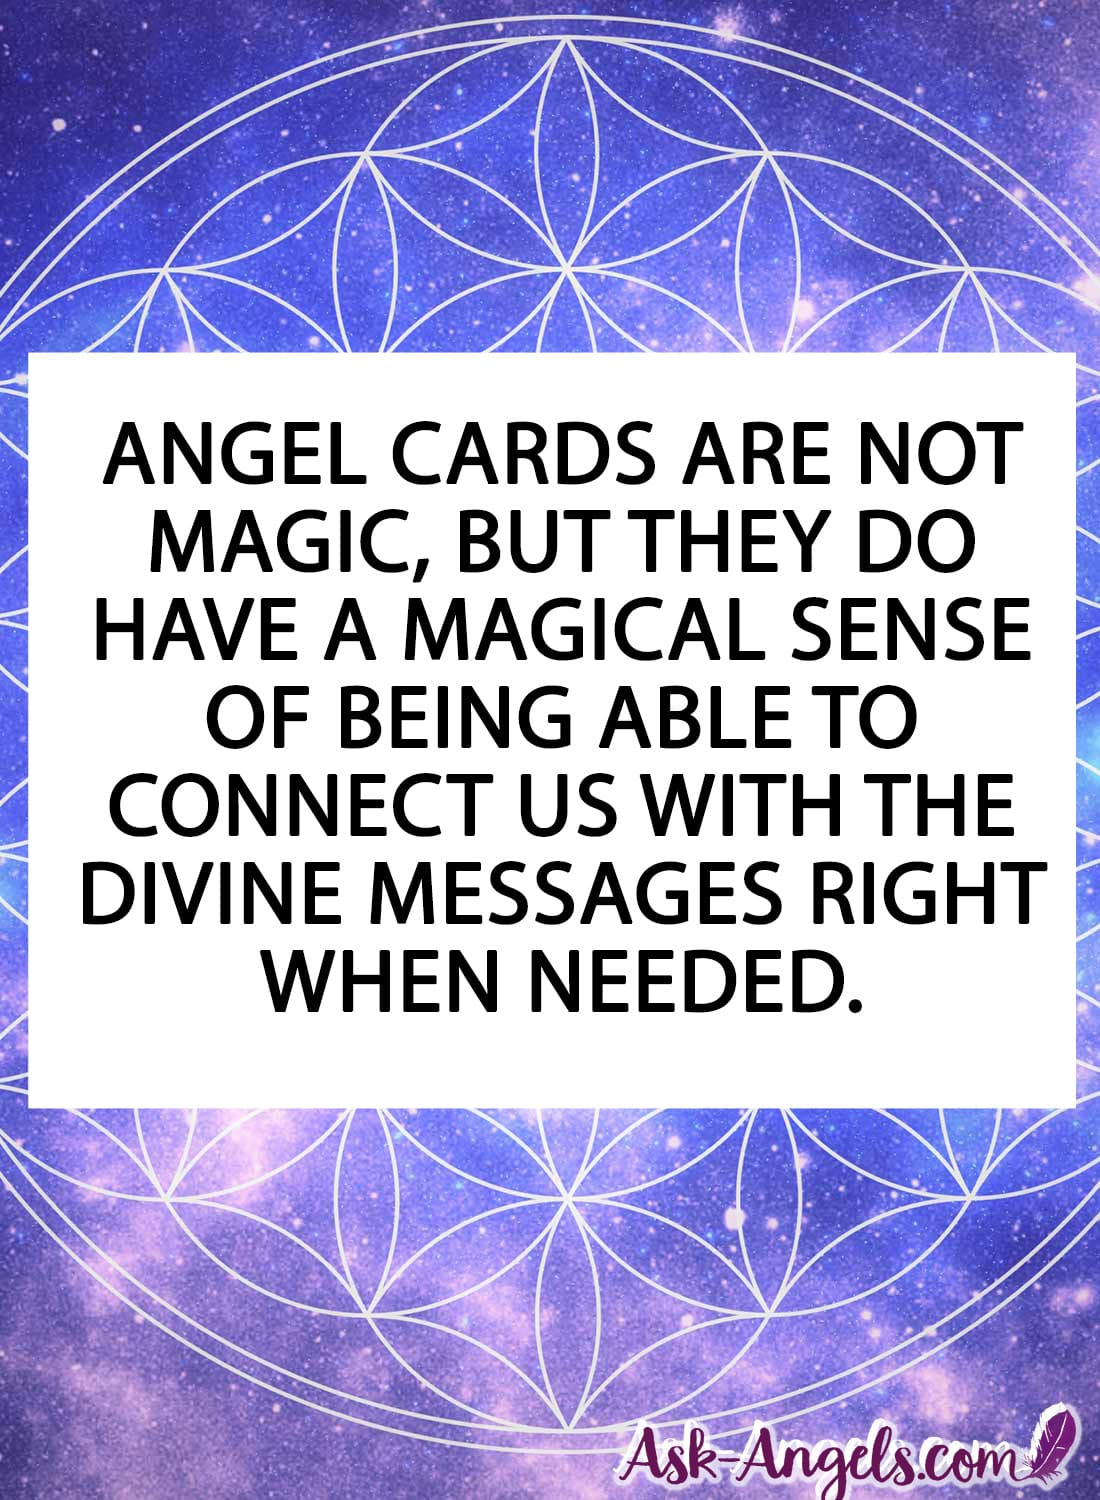 Angel Cards are not magic, but they do have a magical sense of being able to connect us with the Divine messages right when needed.